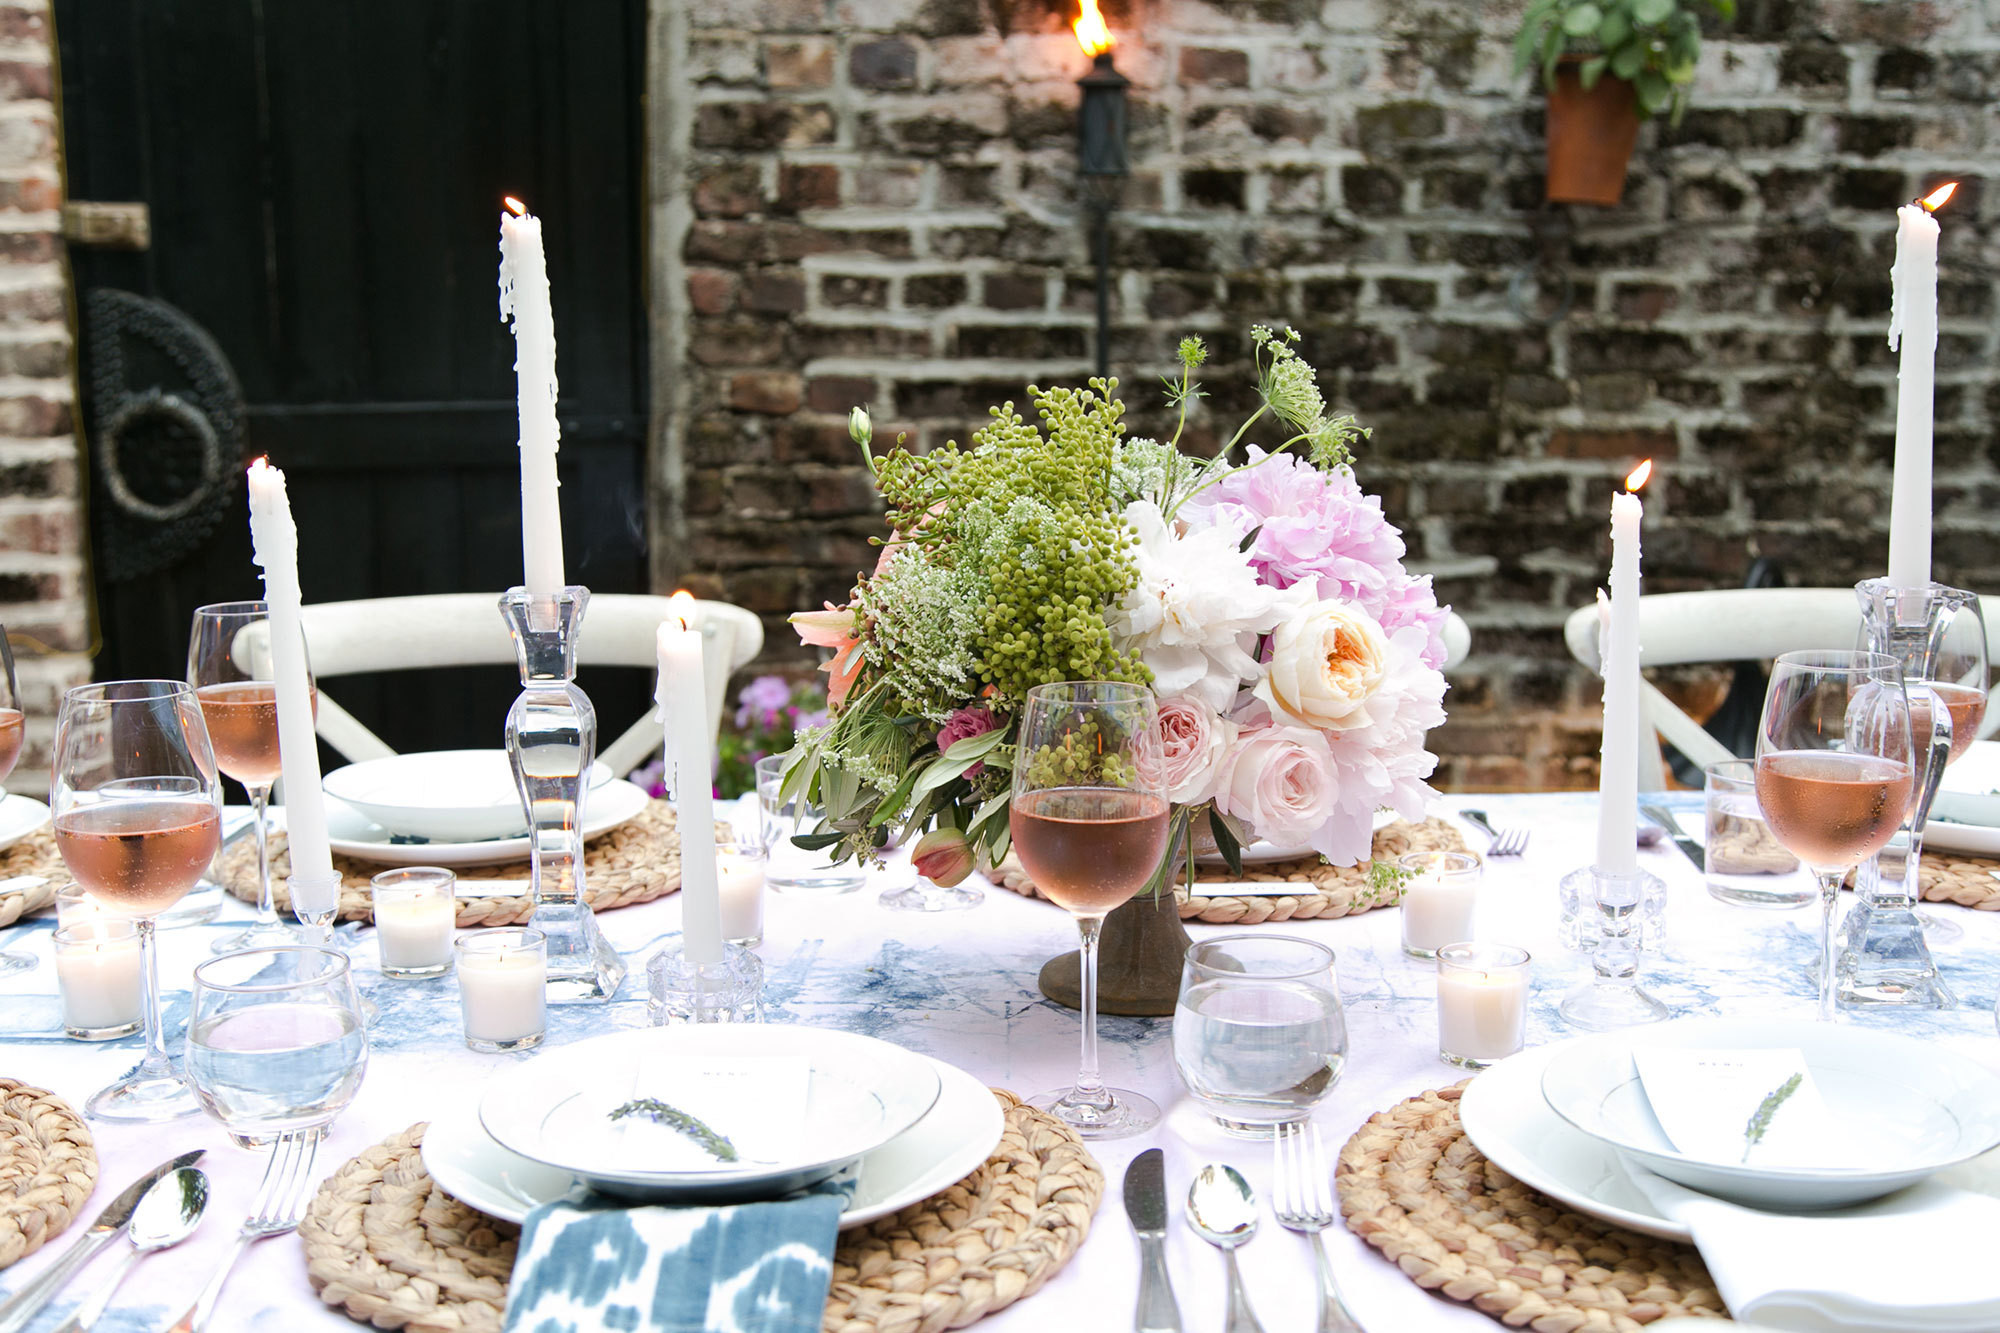 Couples Dinner Party Ideas  A Backyard Dinner Party in Charleston Entertaining Idea